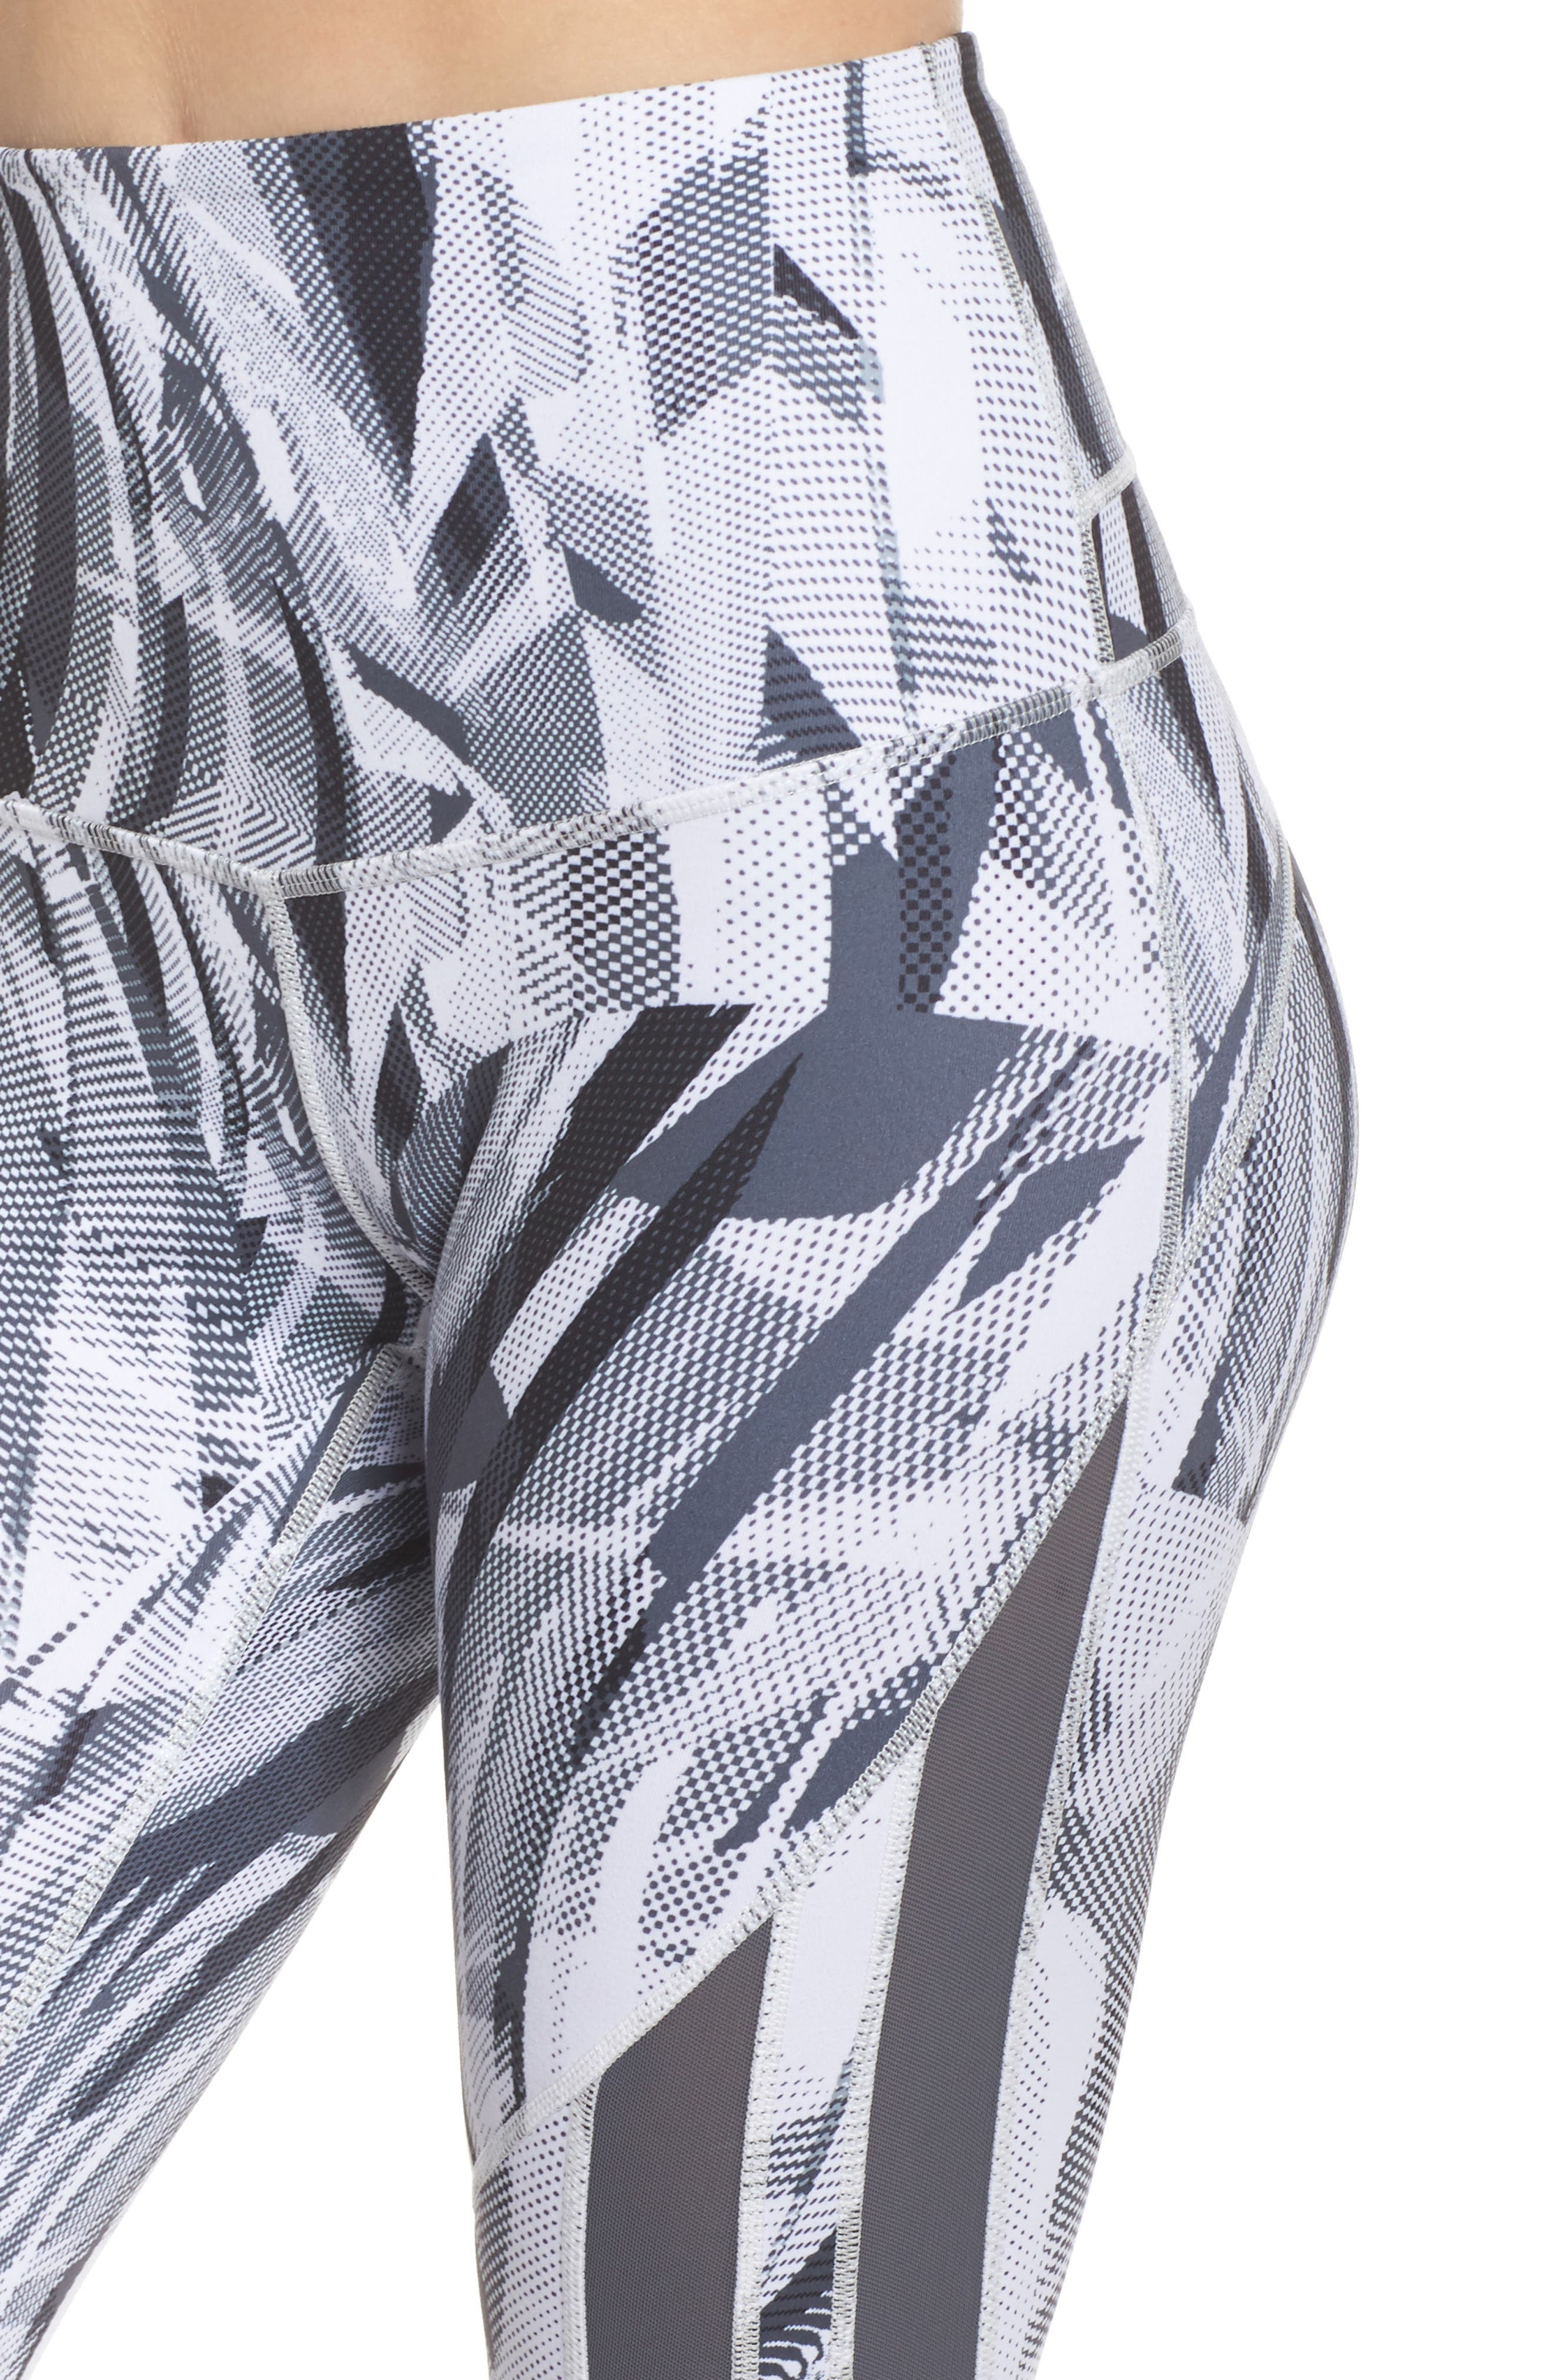 Sheer to There High Waist Crop Leggings,                             Alternate thumbnail 4, color,                             White Atmospheric Camo Print